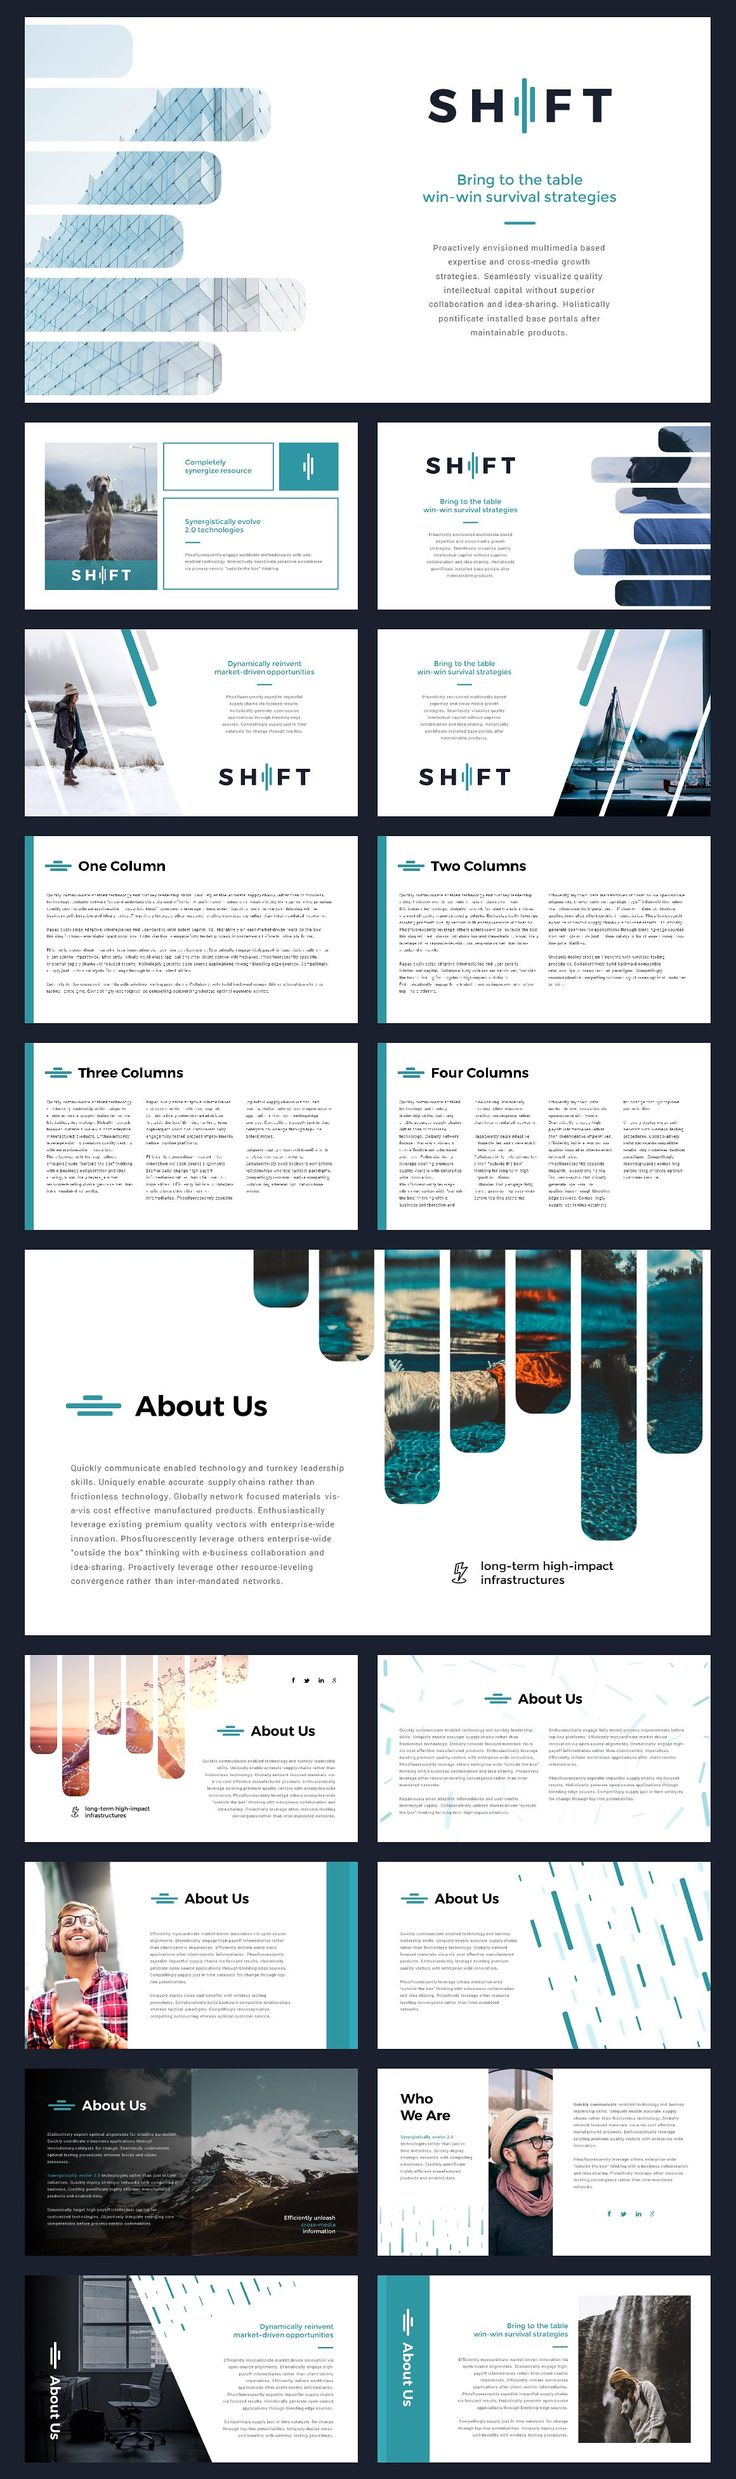 Shift Modern Powerpoint Template by Thrivisualy on @creativemarket